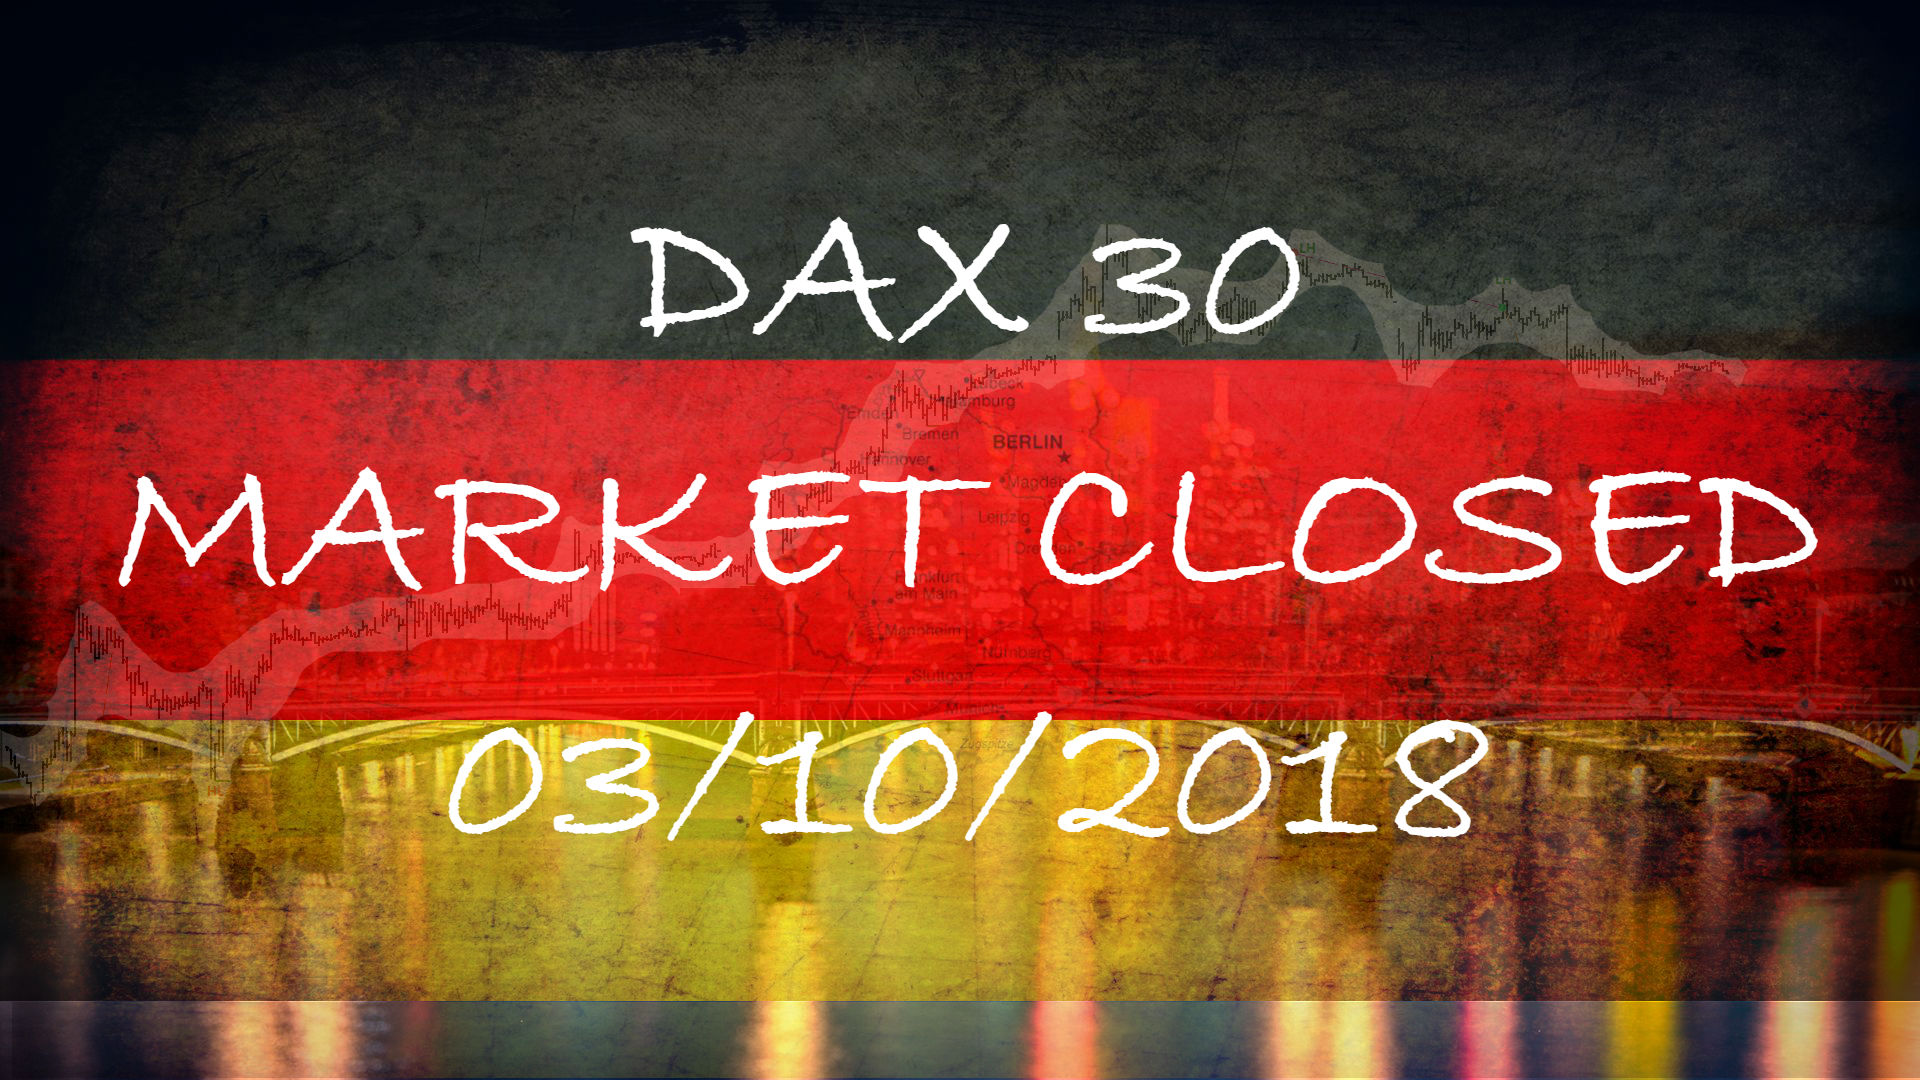 03-10-2018 DAX CLOSED TODAY